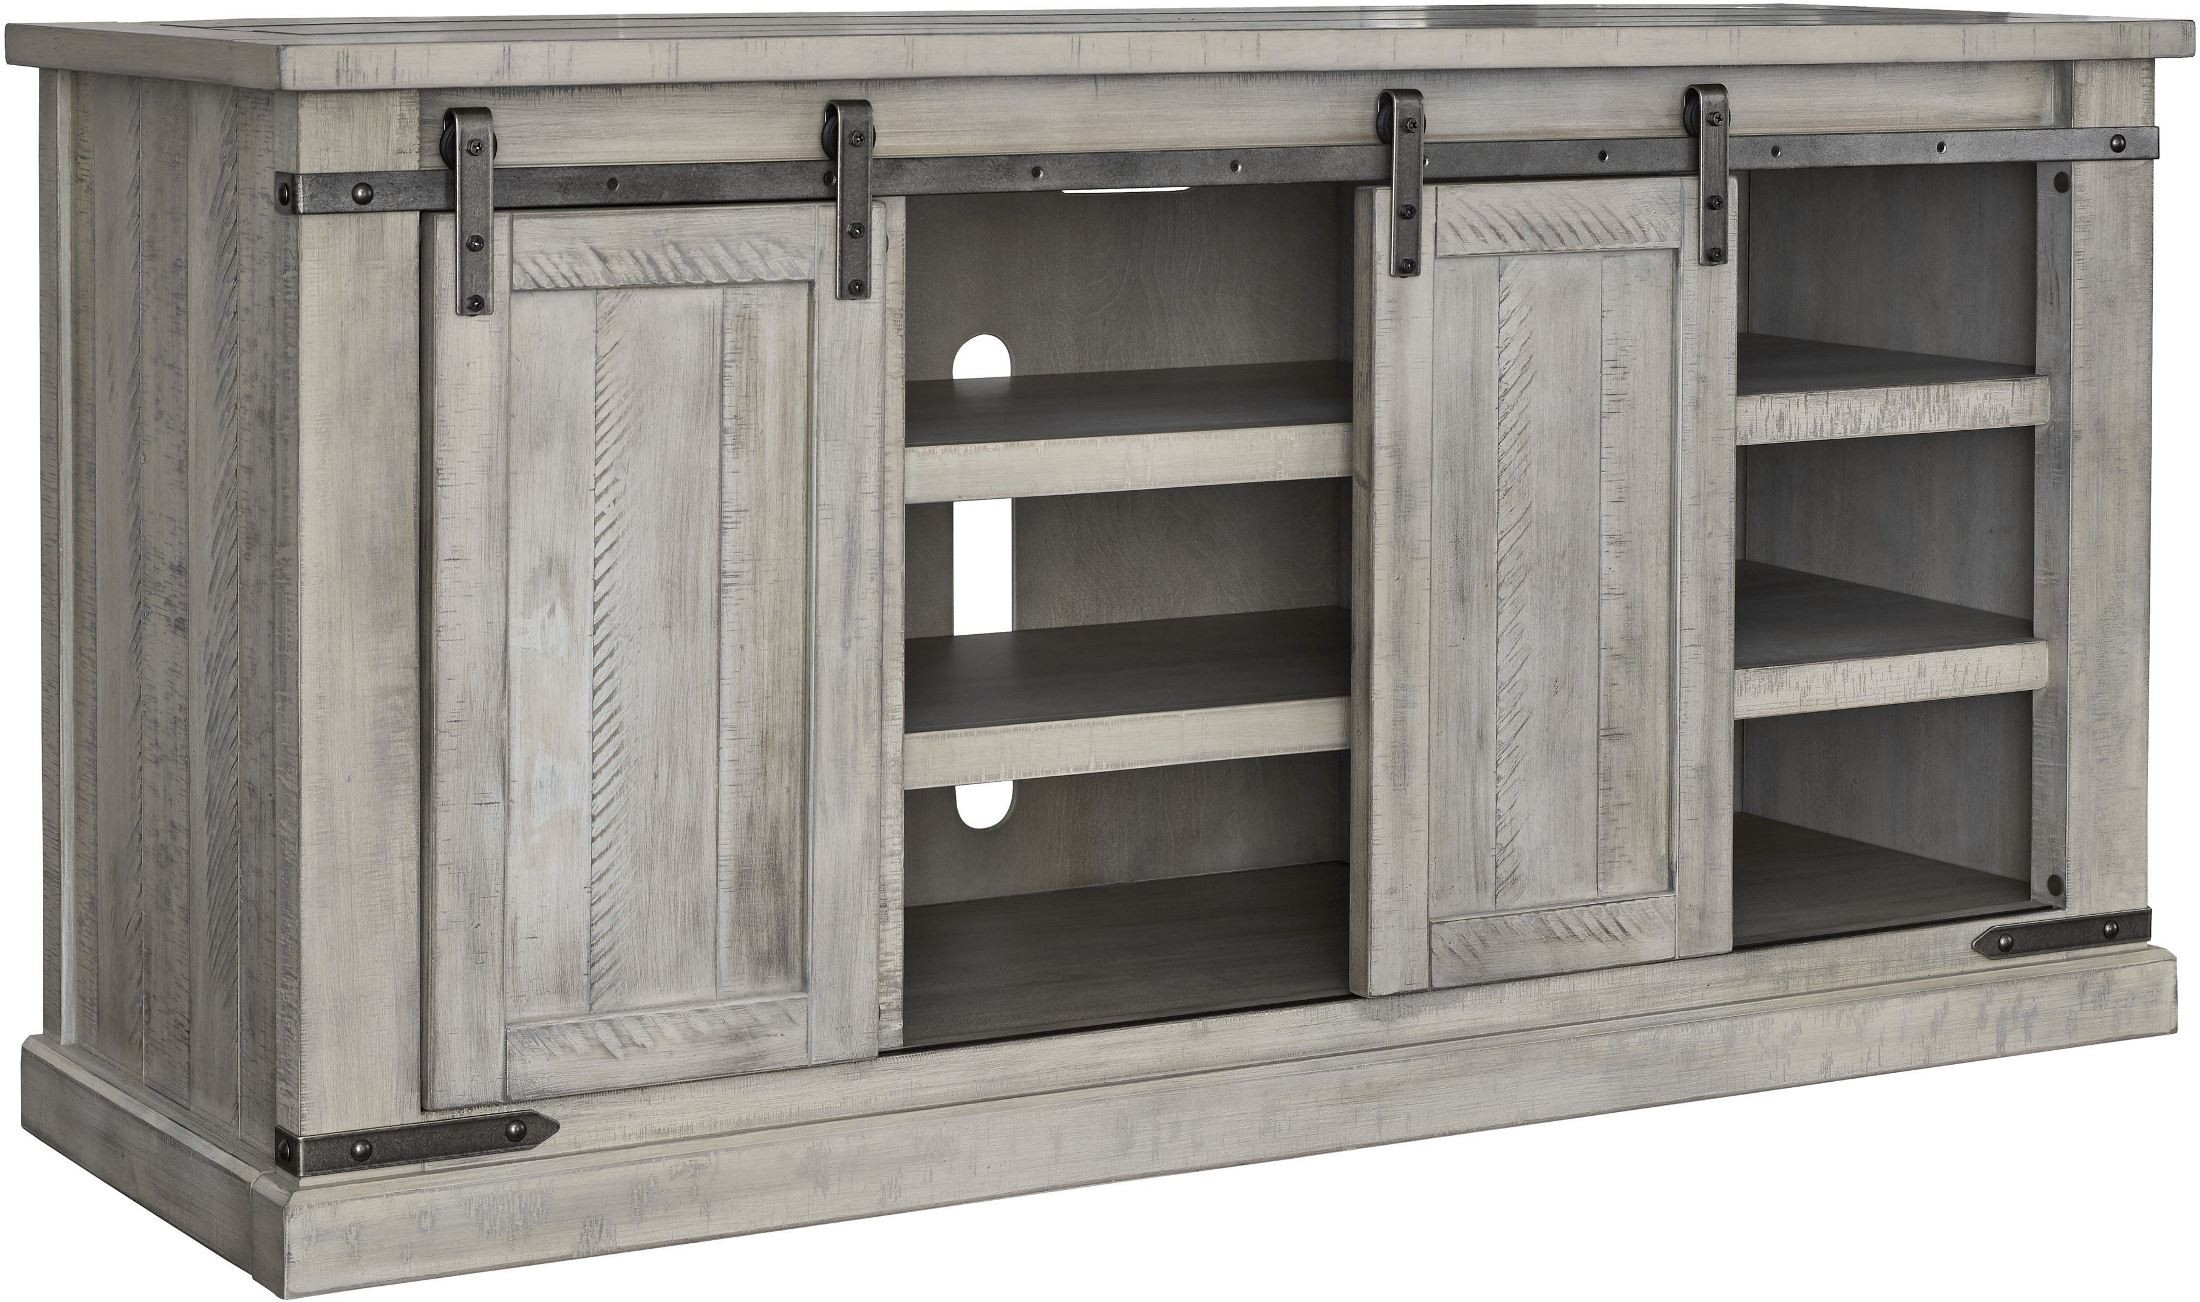 Carynhurst White Wash Large Tv Stand From Ashley | Coleman Furniture Within Vista 68 Inch Tv Stands (View 4 of 30)